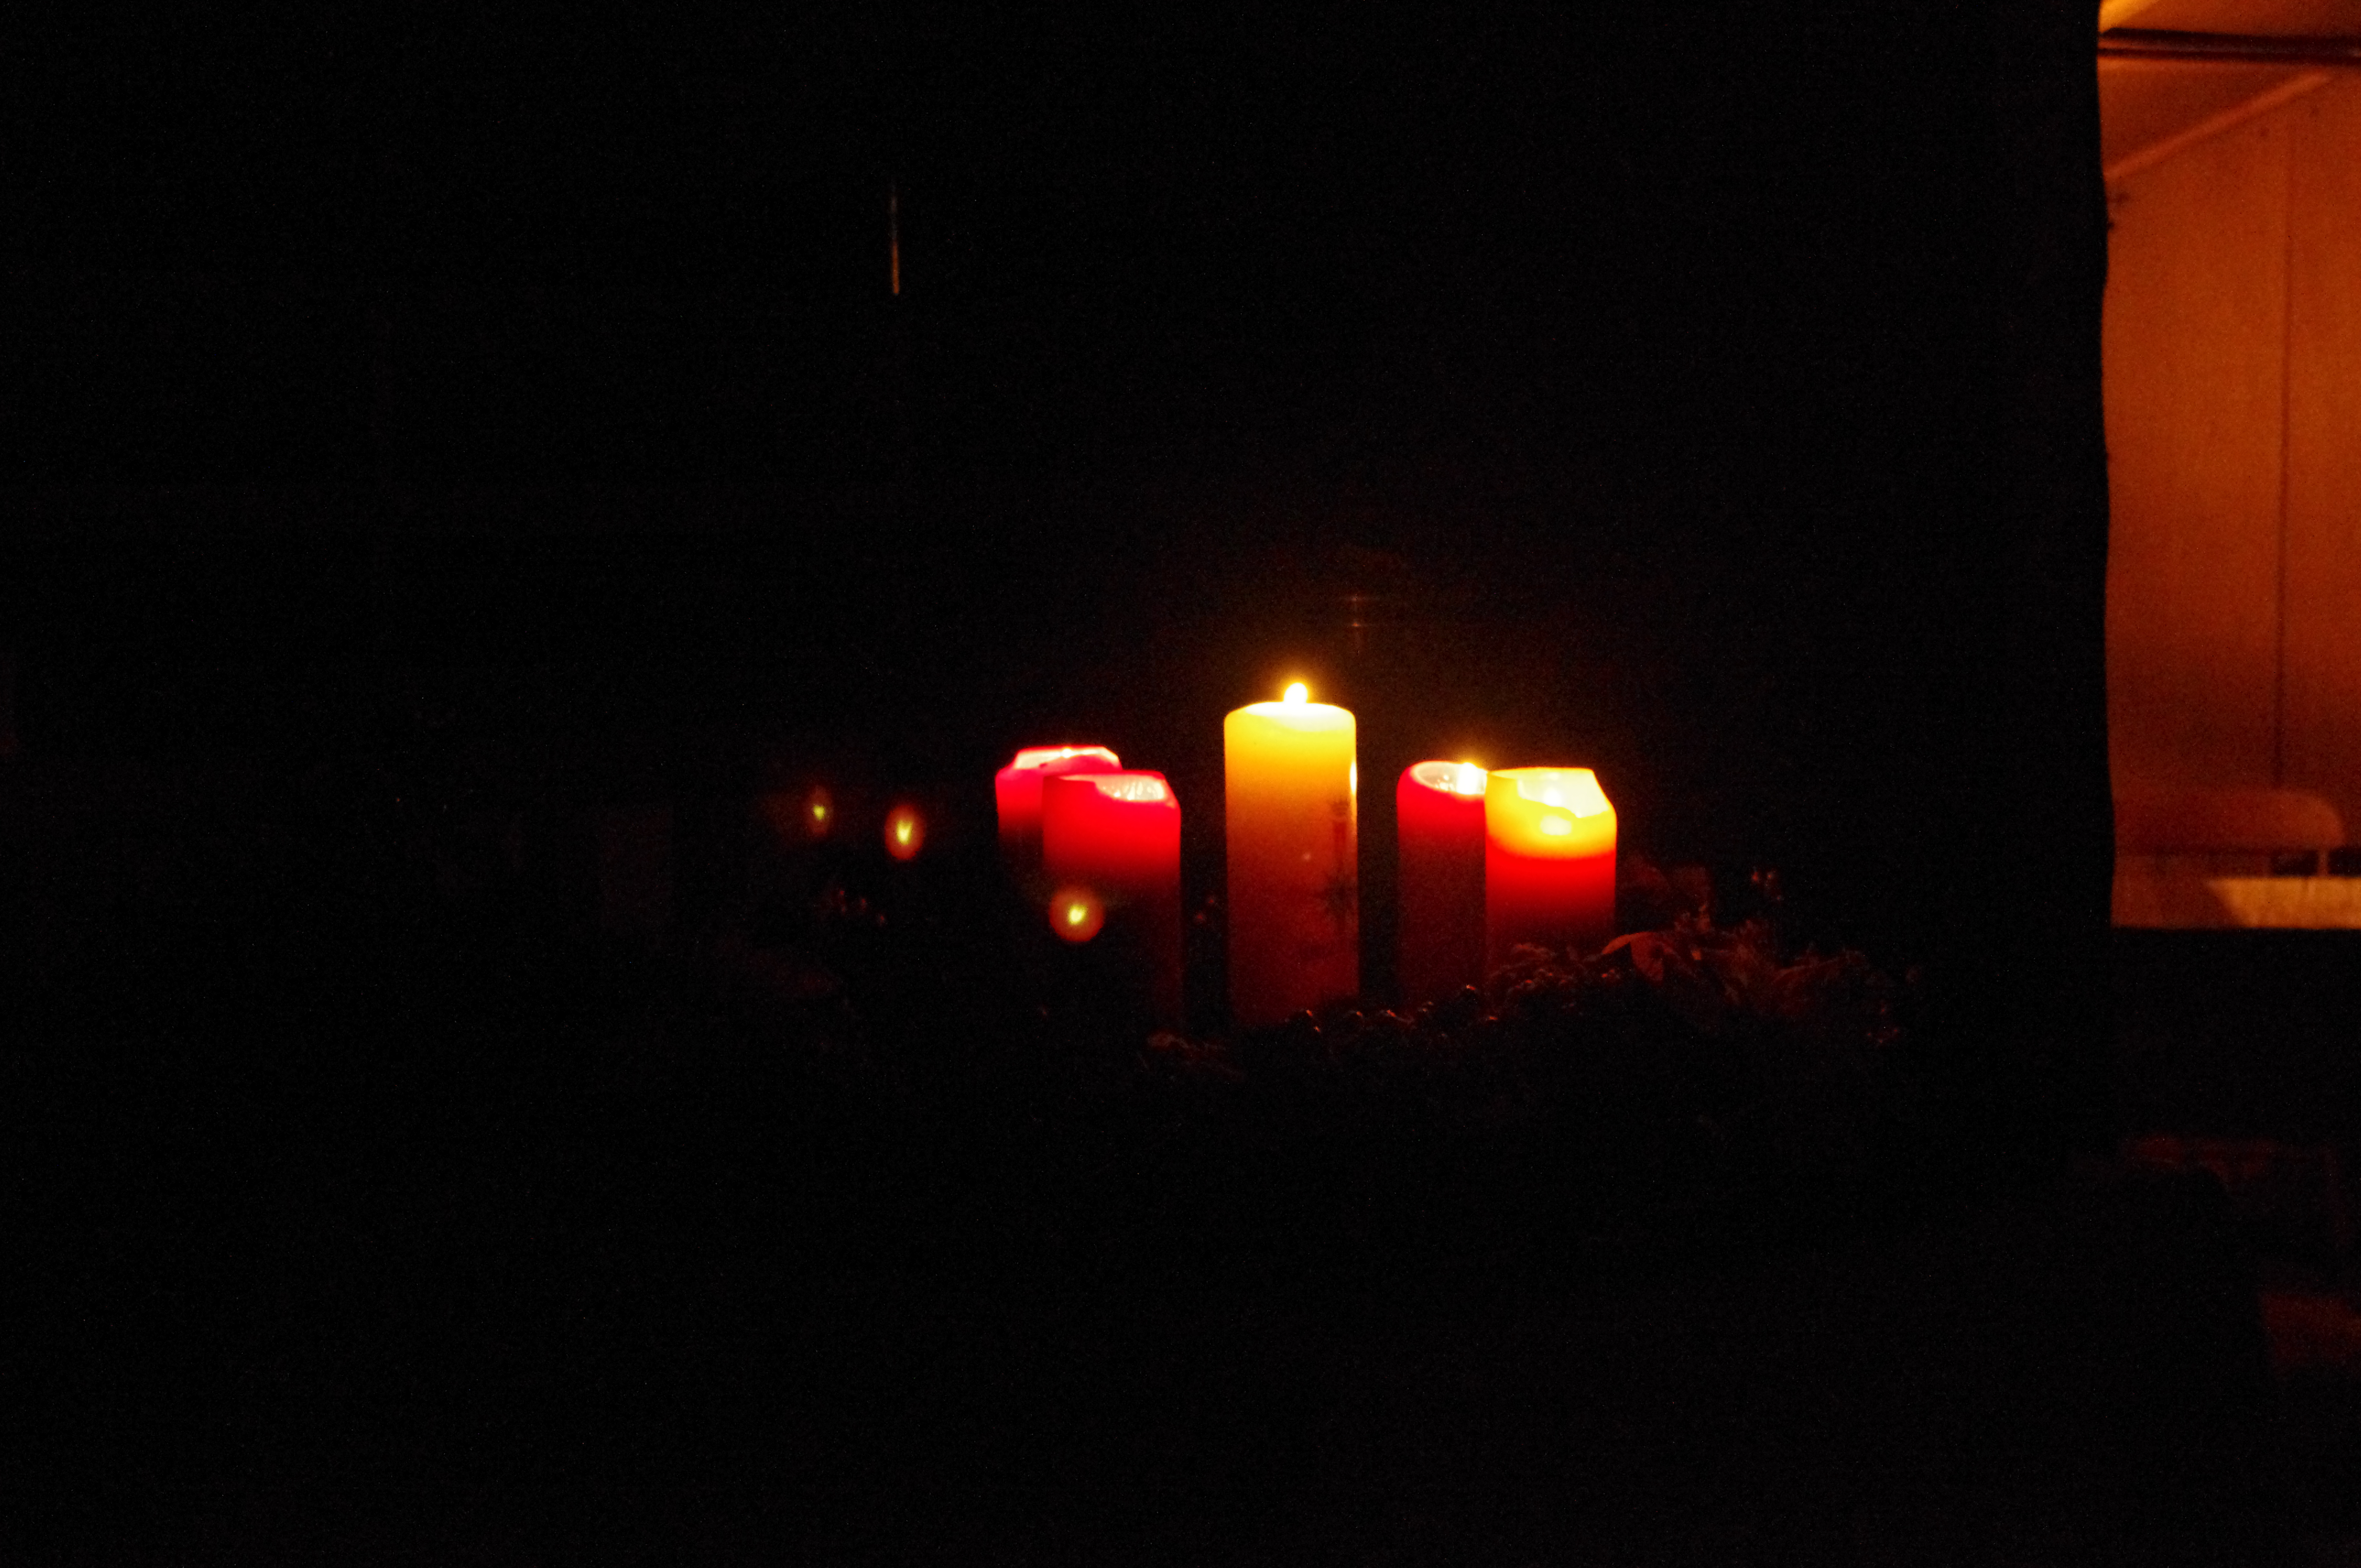 Candles in the dard